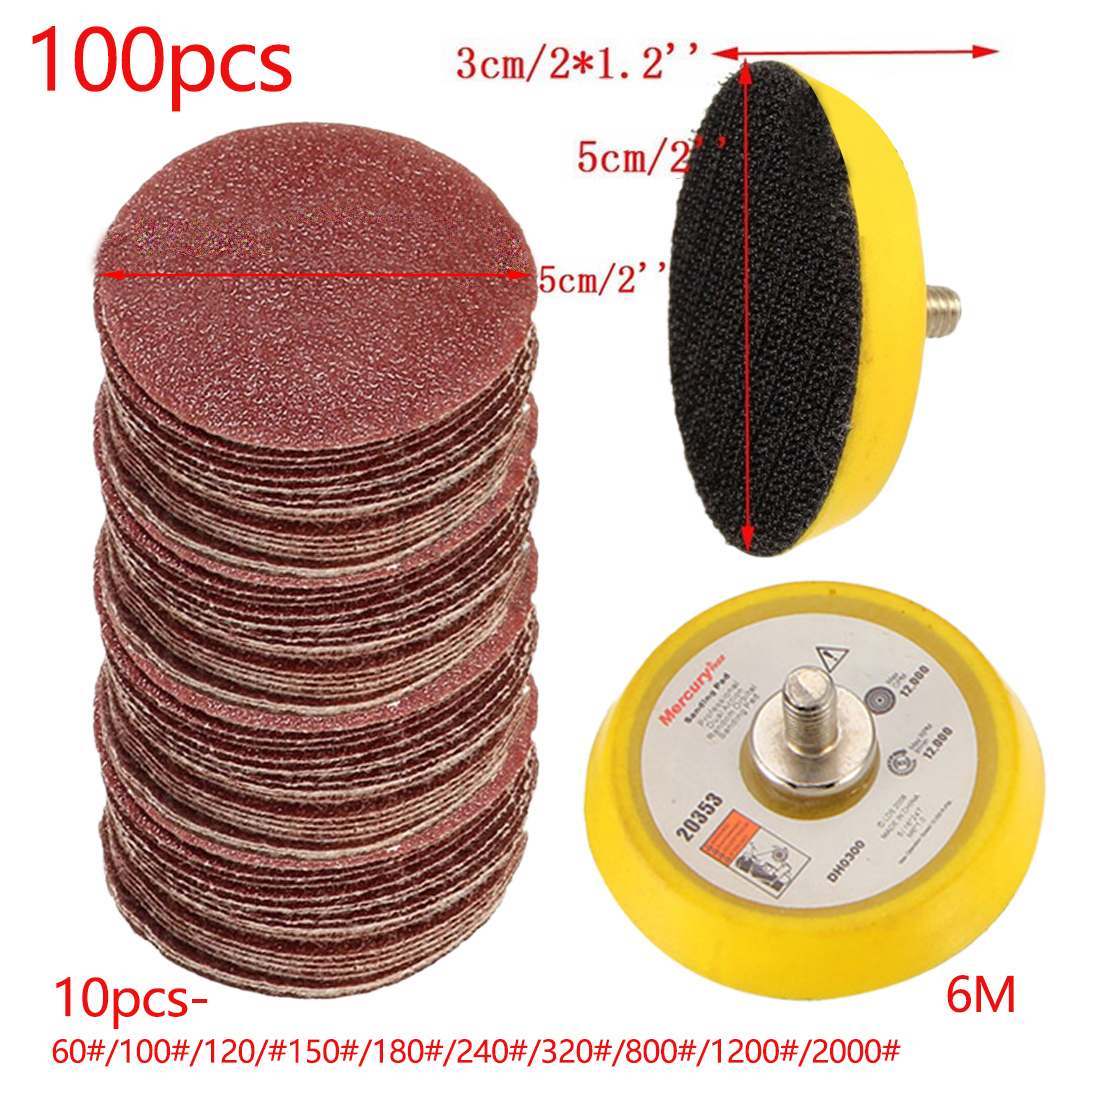 100pcs 60/100/120/150/180/240/320/800/1200/2000 Grits Sanding Disc Set 2inch 50mm+ Loop Sanding Pad For Polishing Cleaning Tools